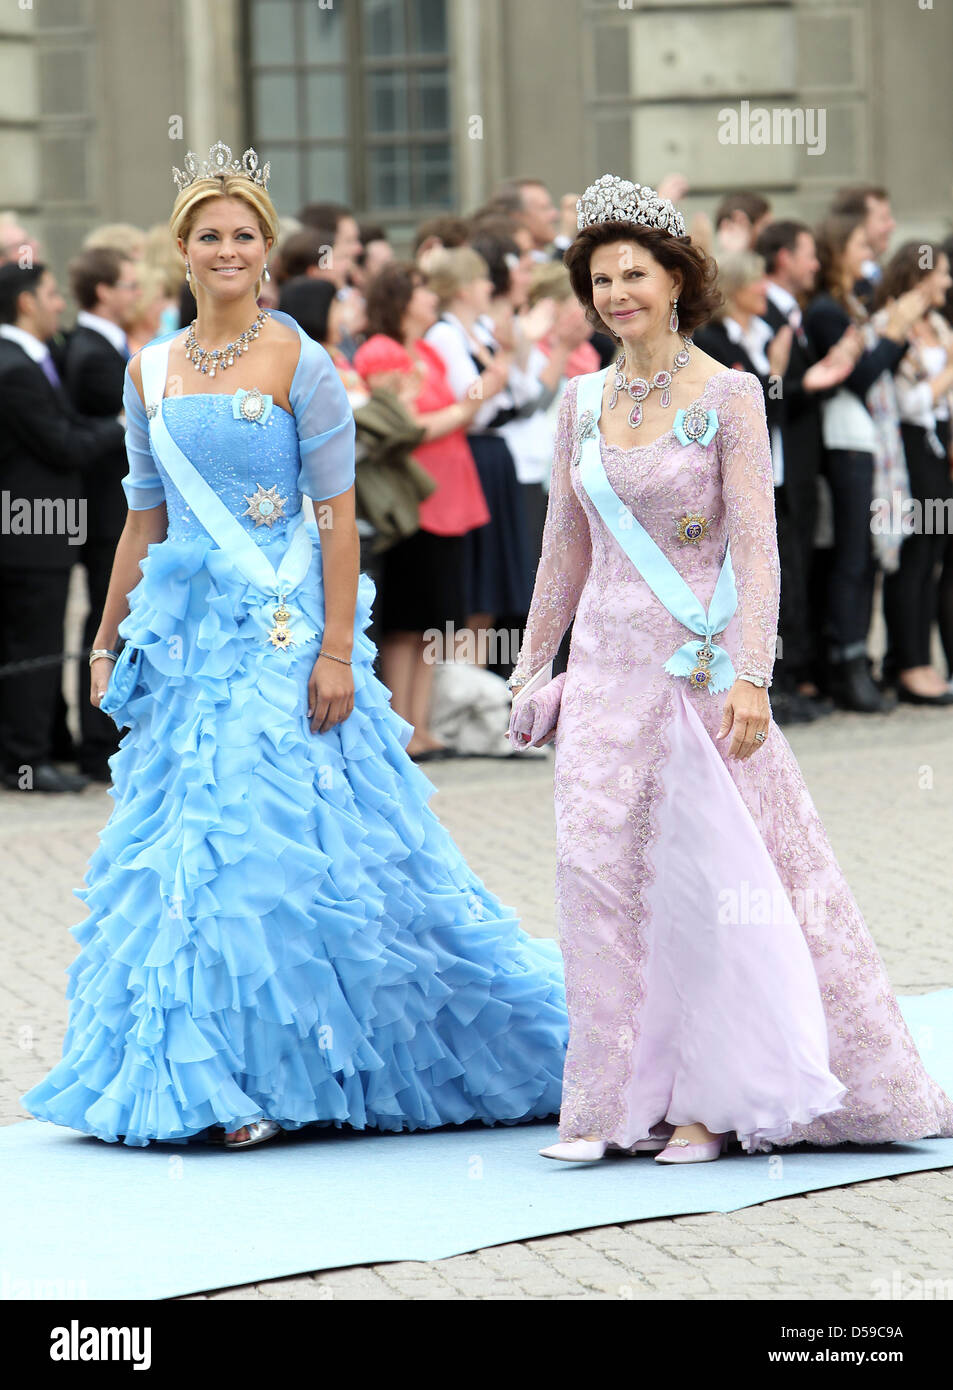 Princess Madeleine of Sweden (L) and Queen Silvia of Sweden arrive ...